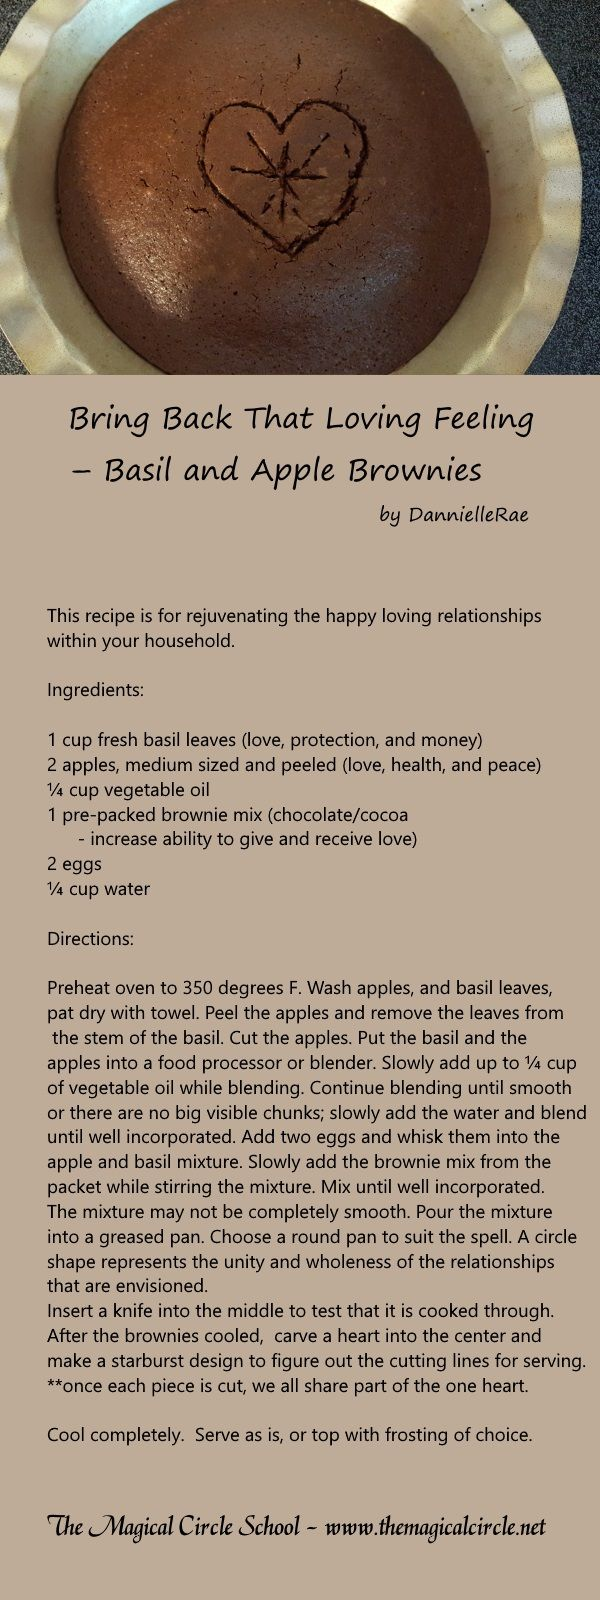 Basil and Apple Brownies - Love Spell Work - by DannielleRae - The Magical Circle School www.themagicalcircle.net